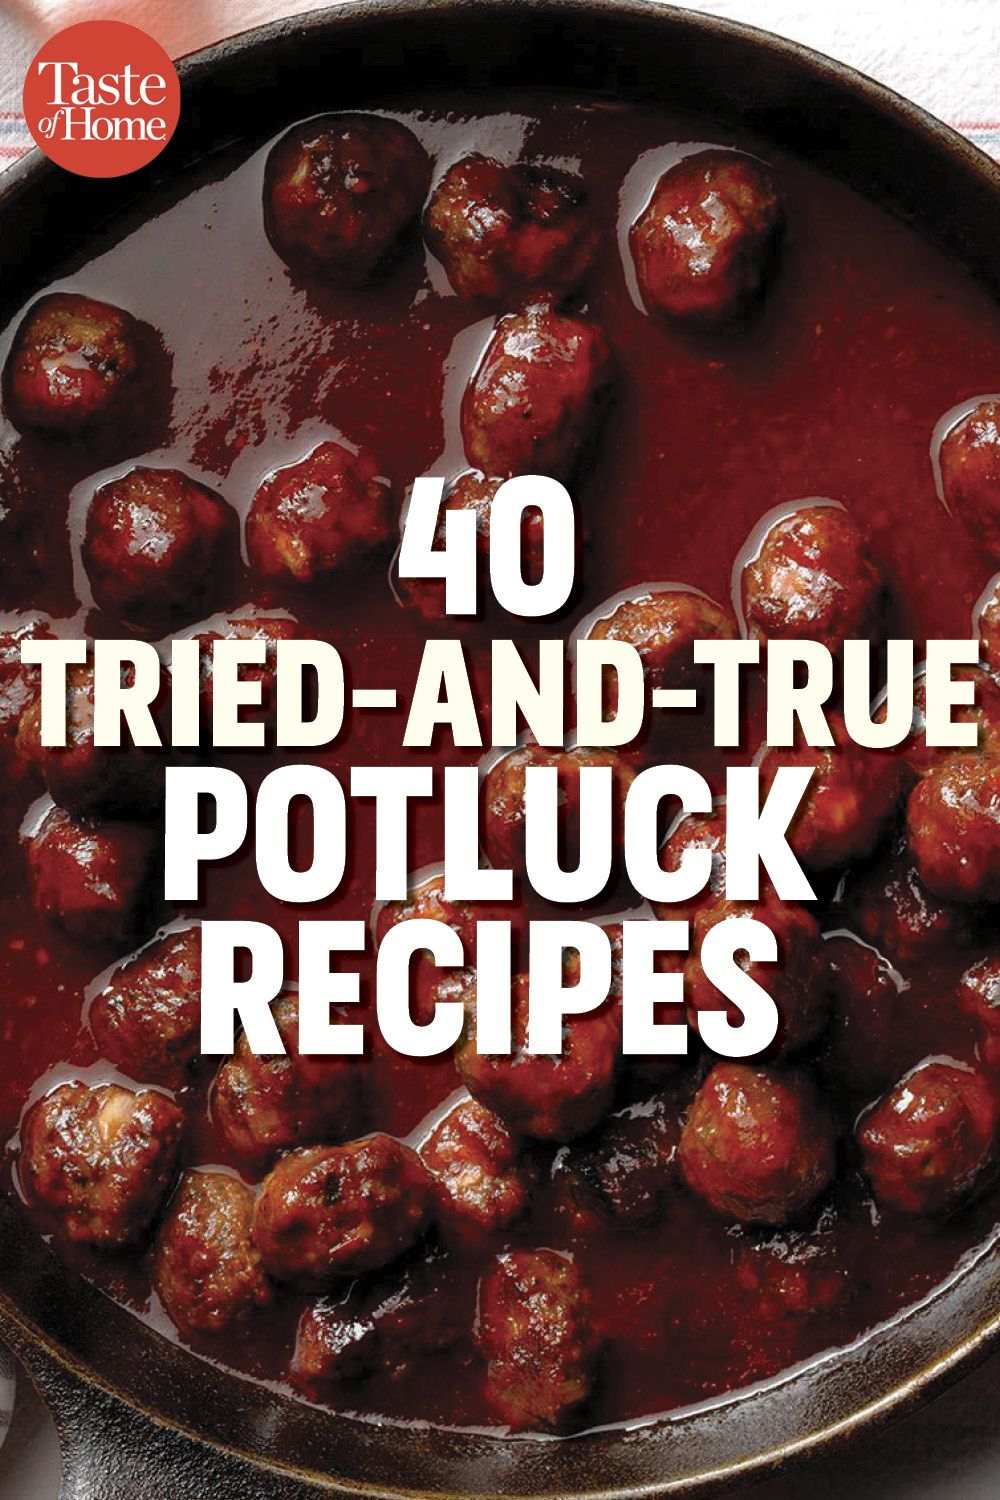 40 Tried-and-True Potluck Recipes